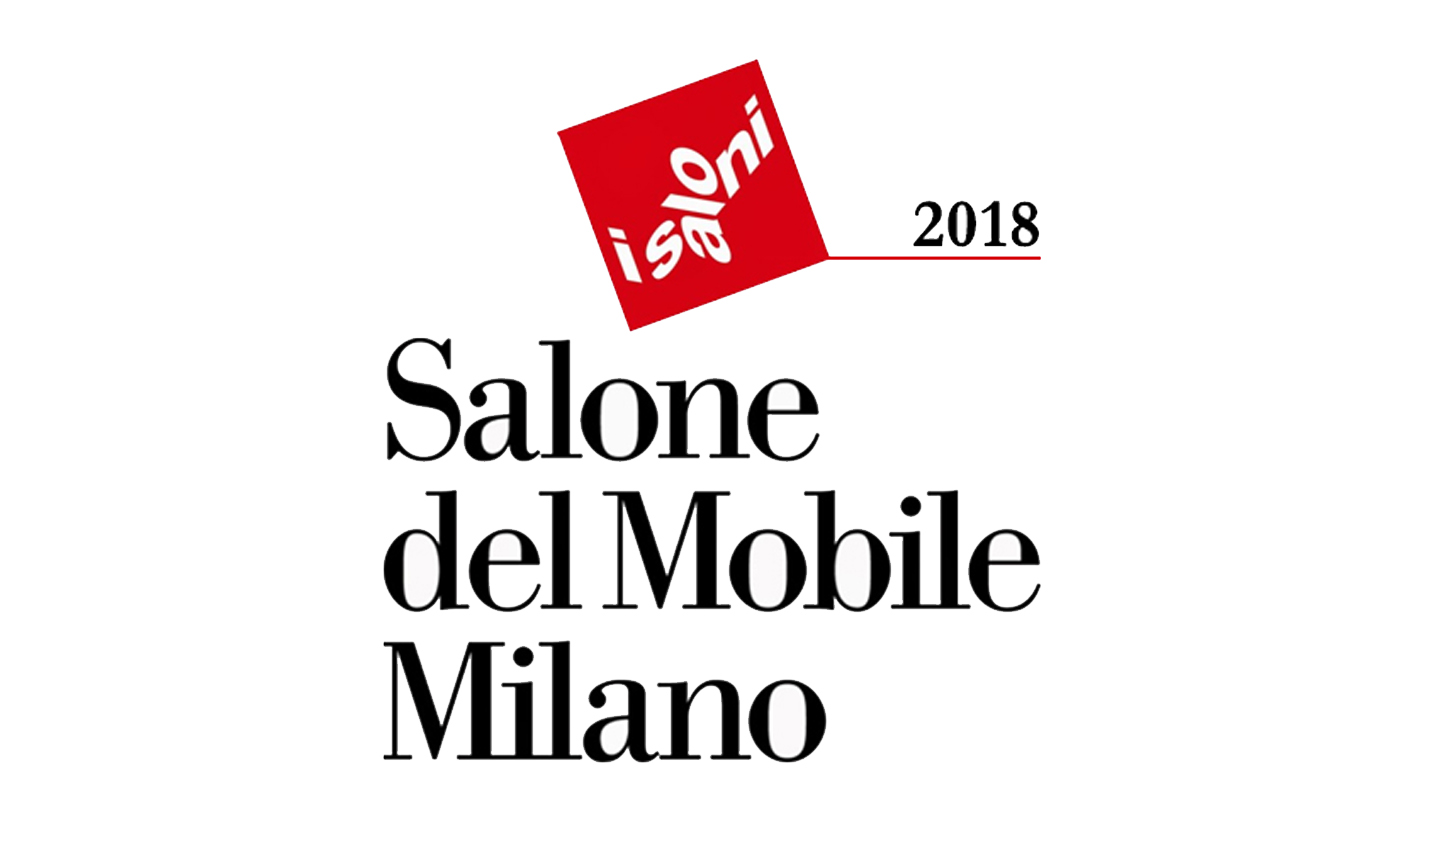 Meet The Winners of the CovetED Awards Presented at iSaloni 2018 jean-louis deniot Jean-Louis Deniot: Meet the Extraordinary Interior Designer Meet The Winners of the CovetED Awards Presented at iSaloni 2018 01 jean-louis deniot Jean-Louis Deniot: Meet the Extraordinary Interior Designer Meet The Winners of the CovetED Awards Presented at iSaloni 2018 01